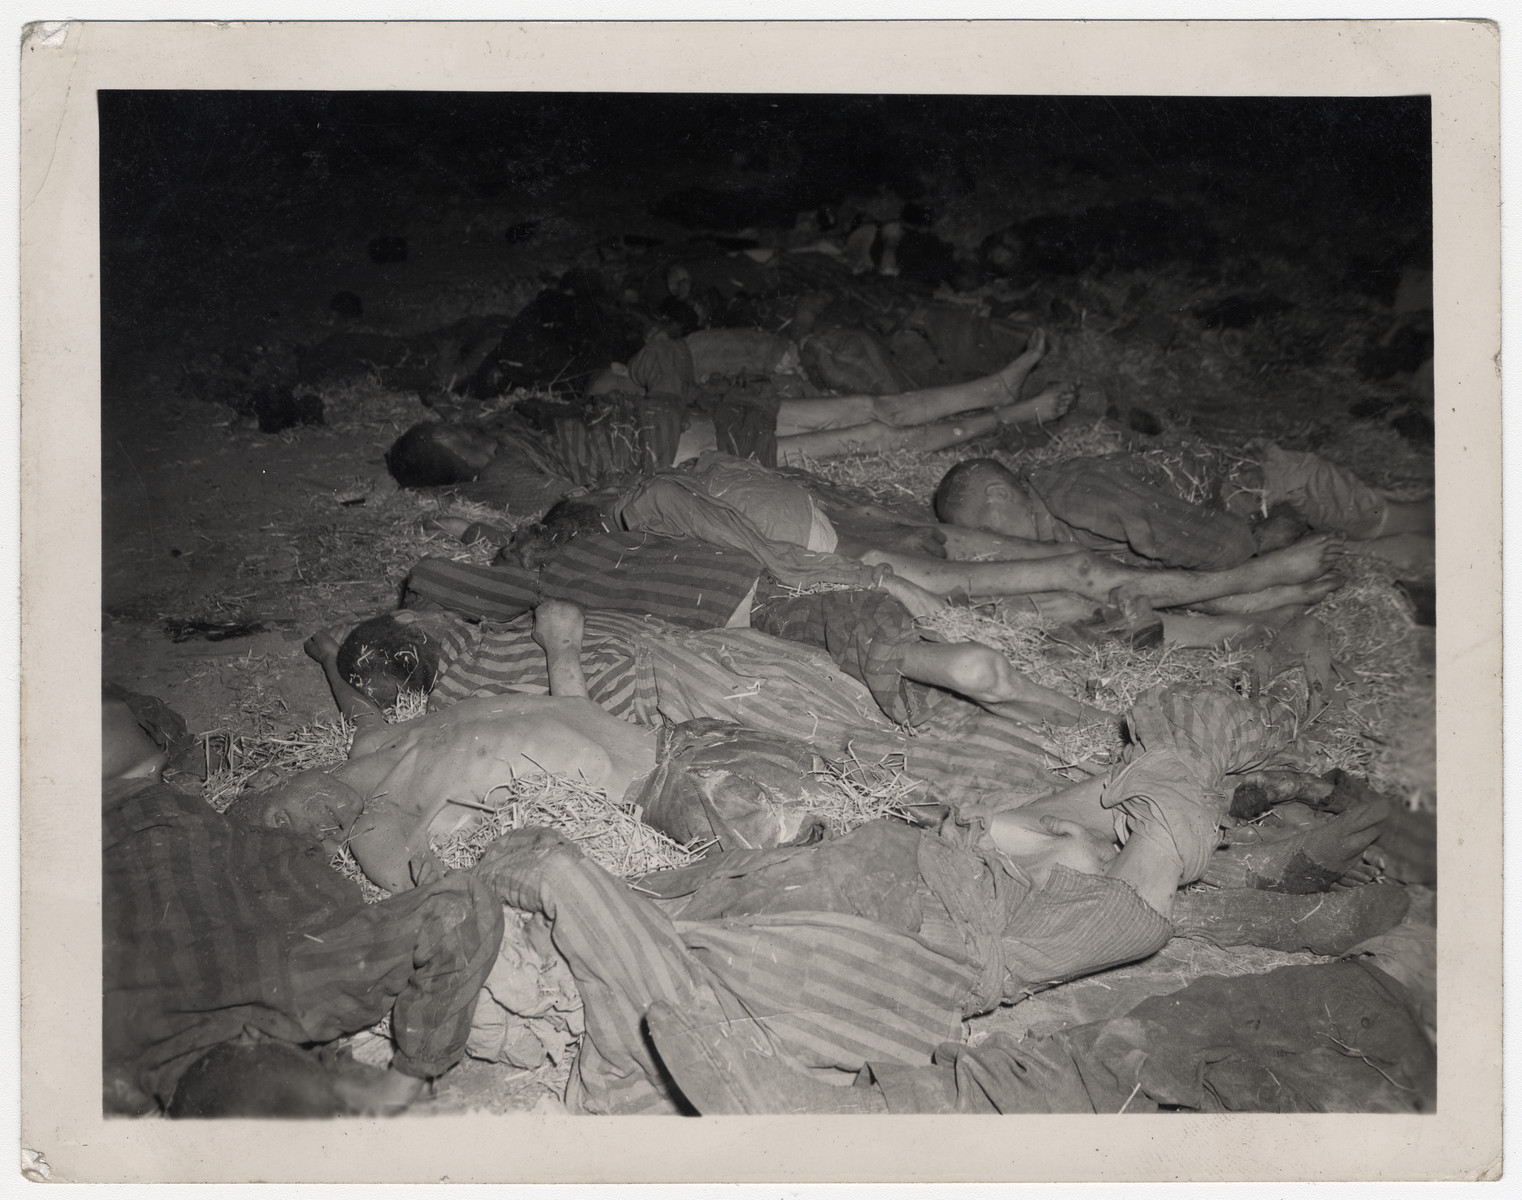 View of corpses on a straw laden floor in the Nordhausen concentration camp.